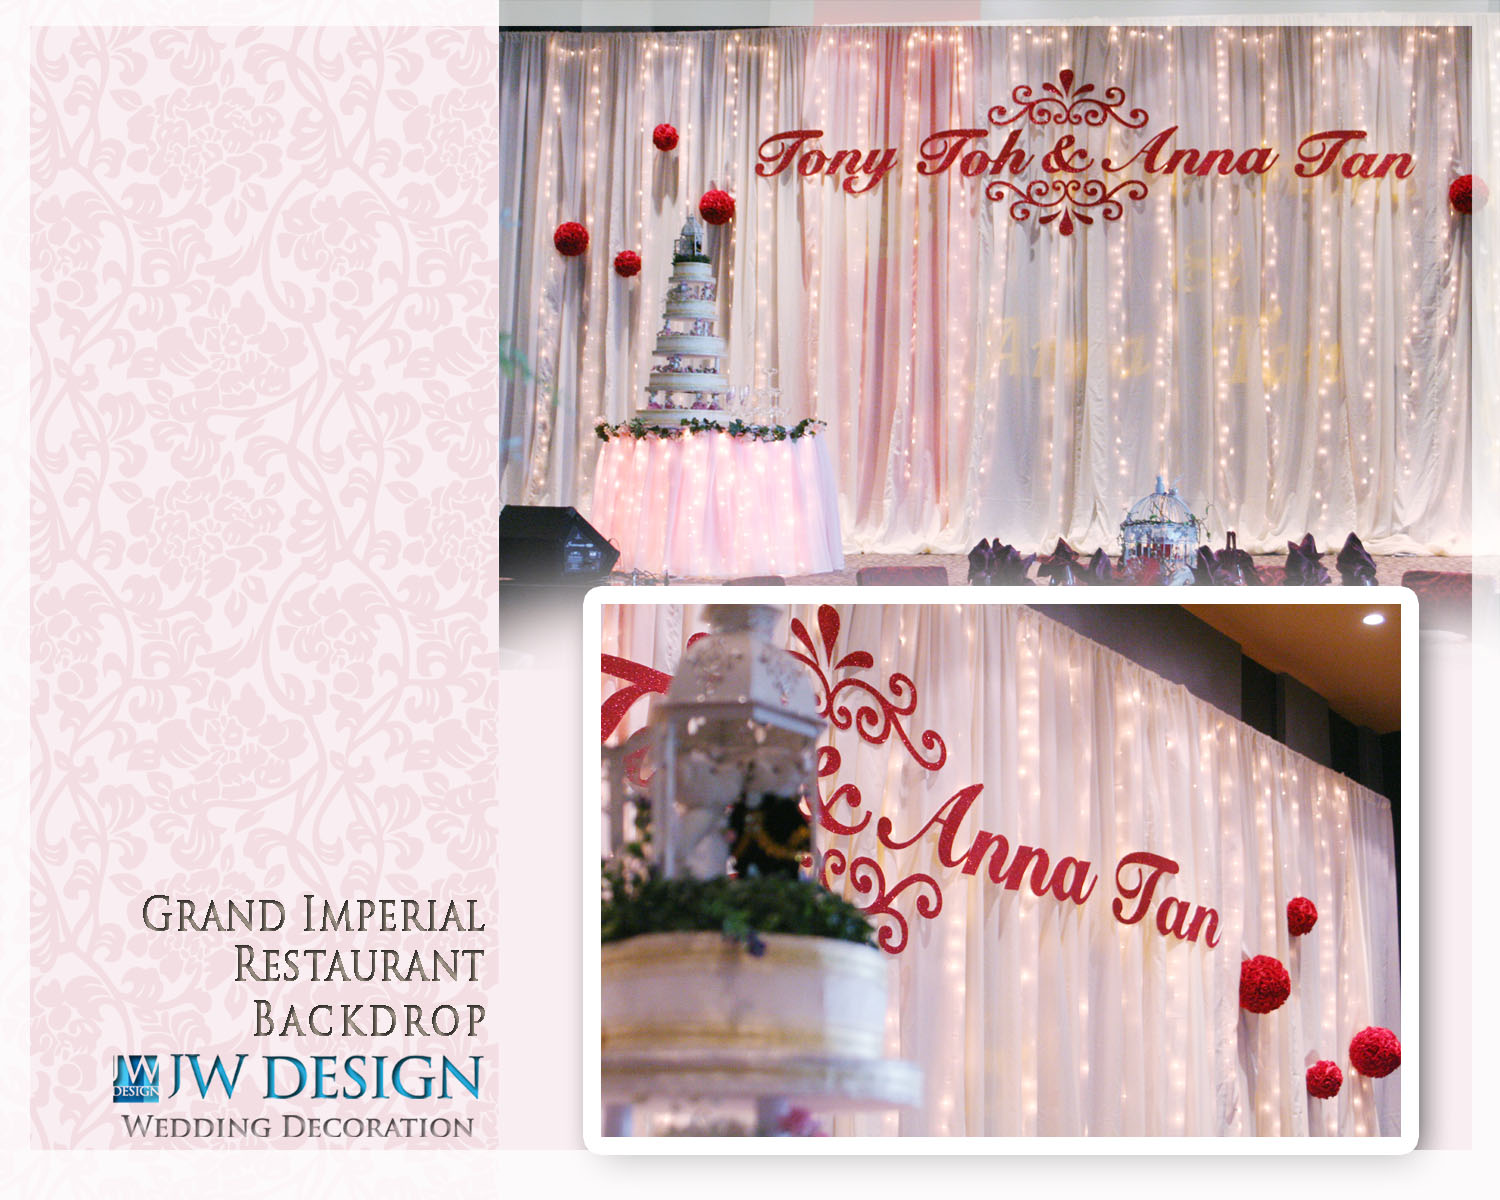 Jw design wedding decoration november 2011 grand imperial restaurant klang posted by jw design wedding decoration junglespirit Gallery